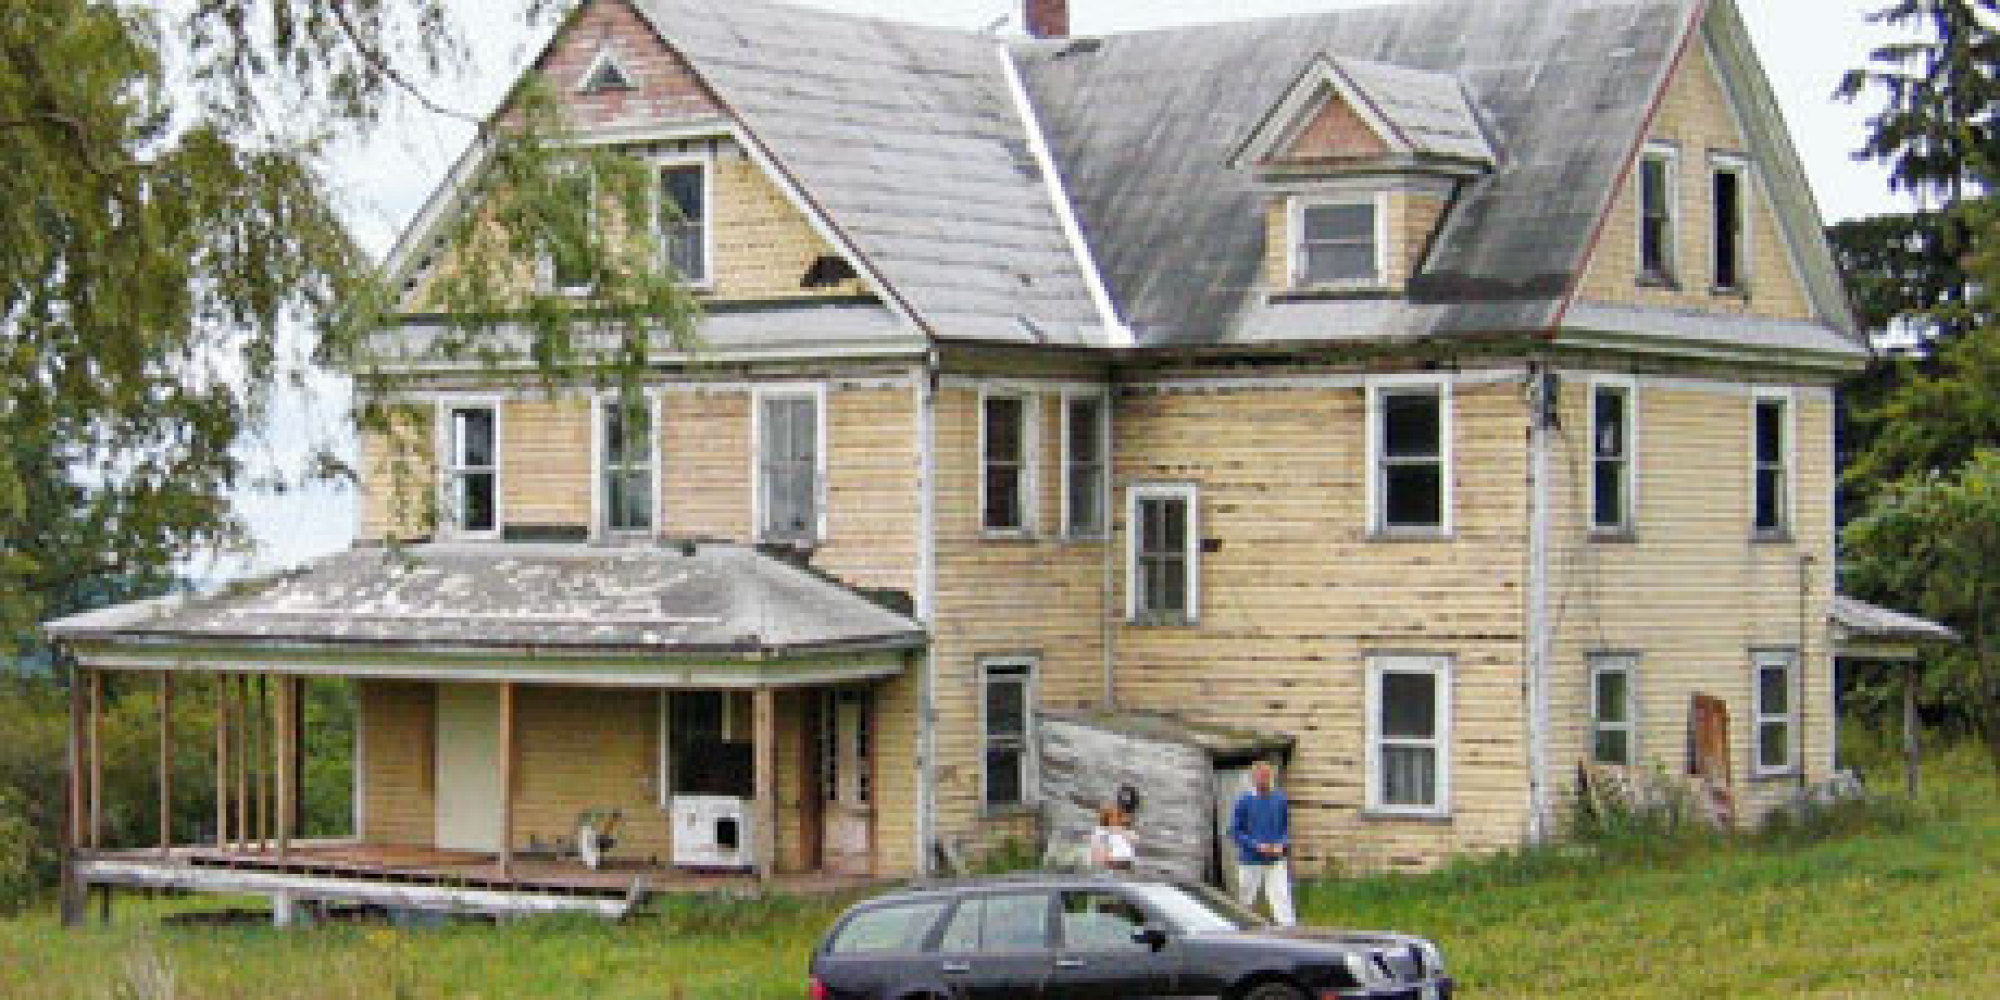 Renovating an old house in upstate new york photos for The classic house